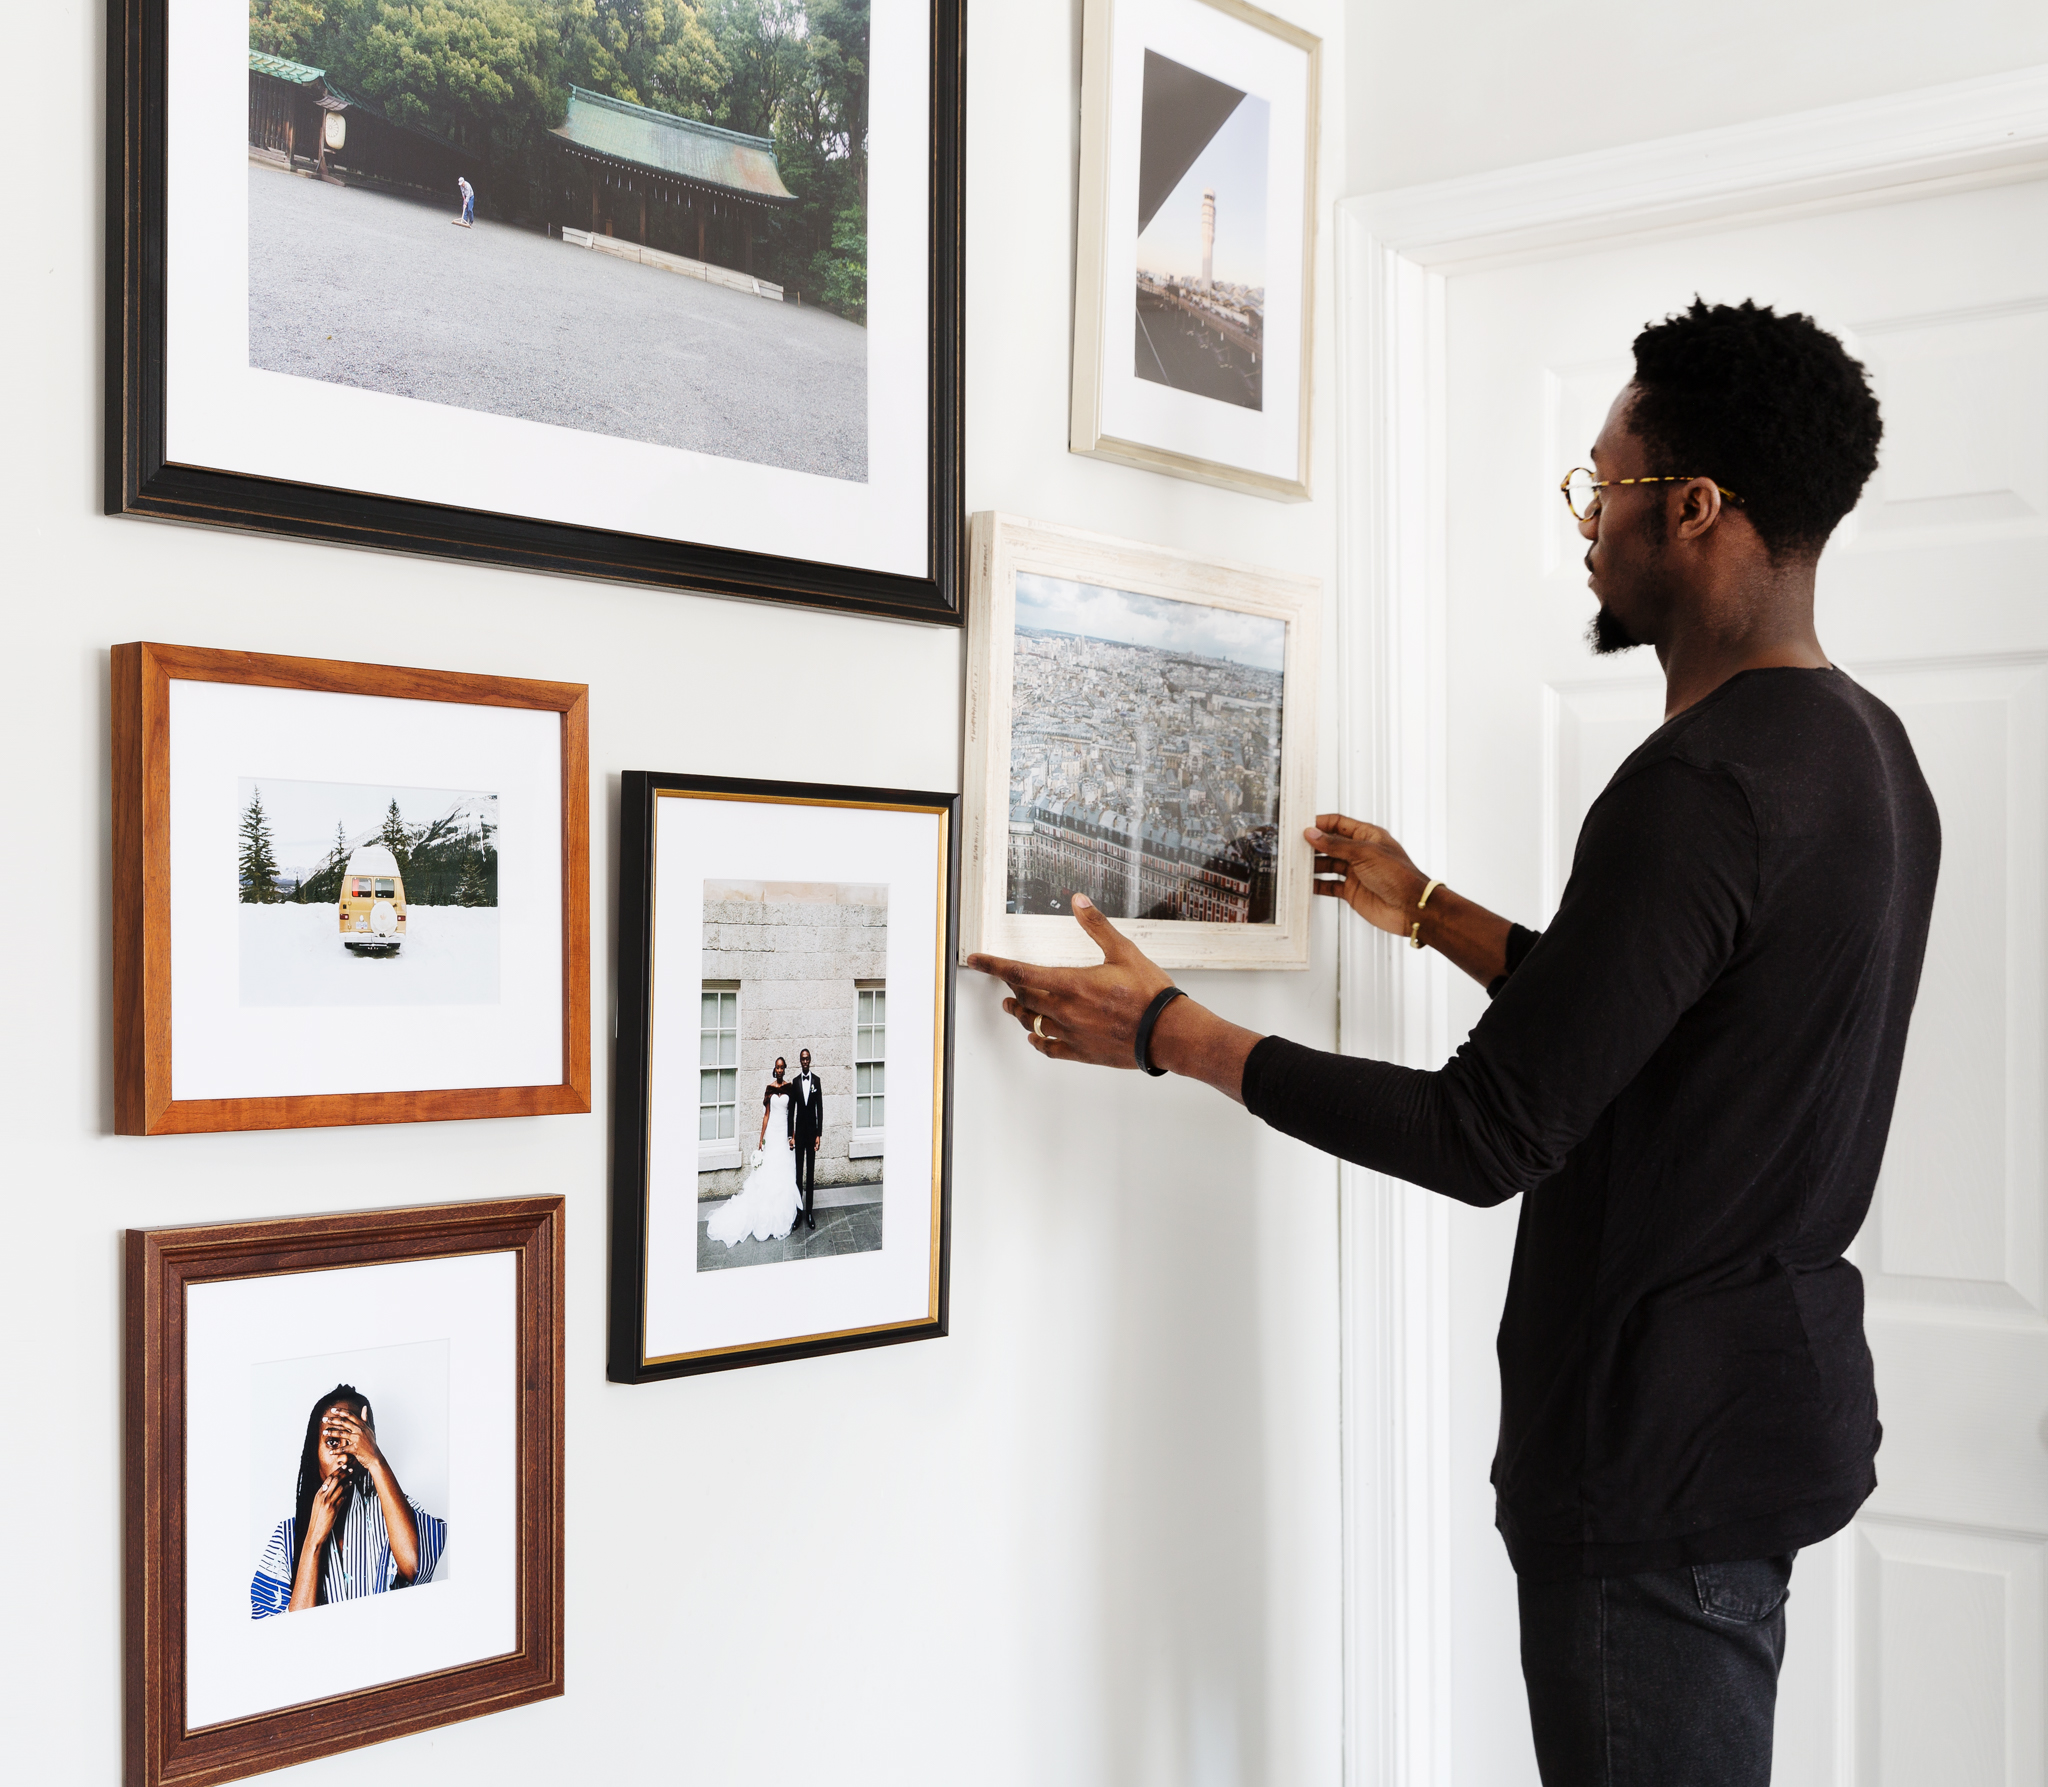 Clean, Sleek, Modern Gallery Wall of Family Photos in House in Washington D.C.